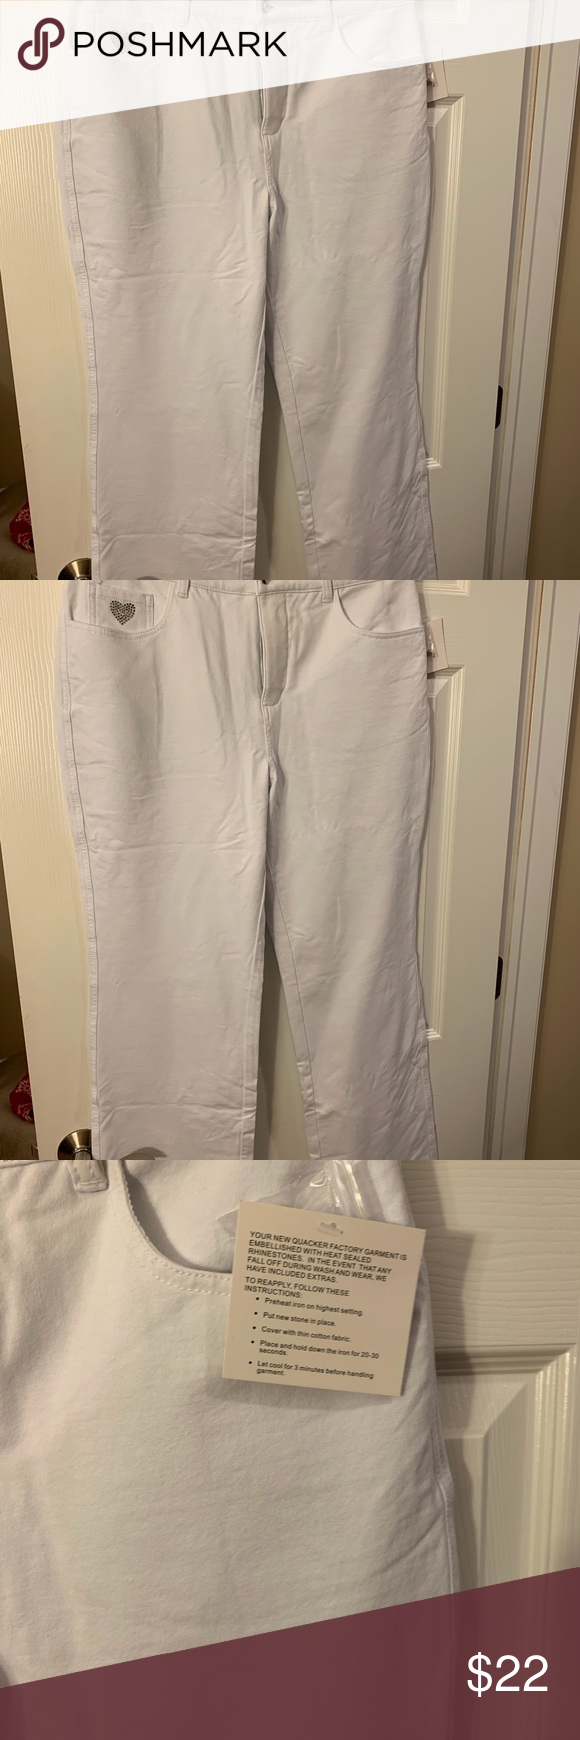 Quicker Factory Dream Jeans 12tall White Jeans From Quacker Factory Size 12 Tall See Qvc Size Chart These Jeans Str Dream Jeans Quacker Factory Stretch Jeans